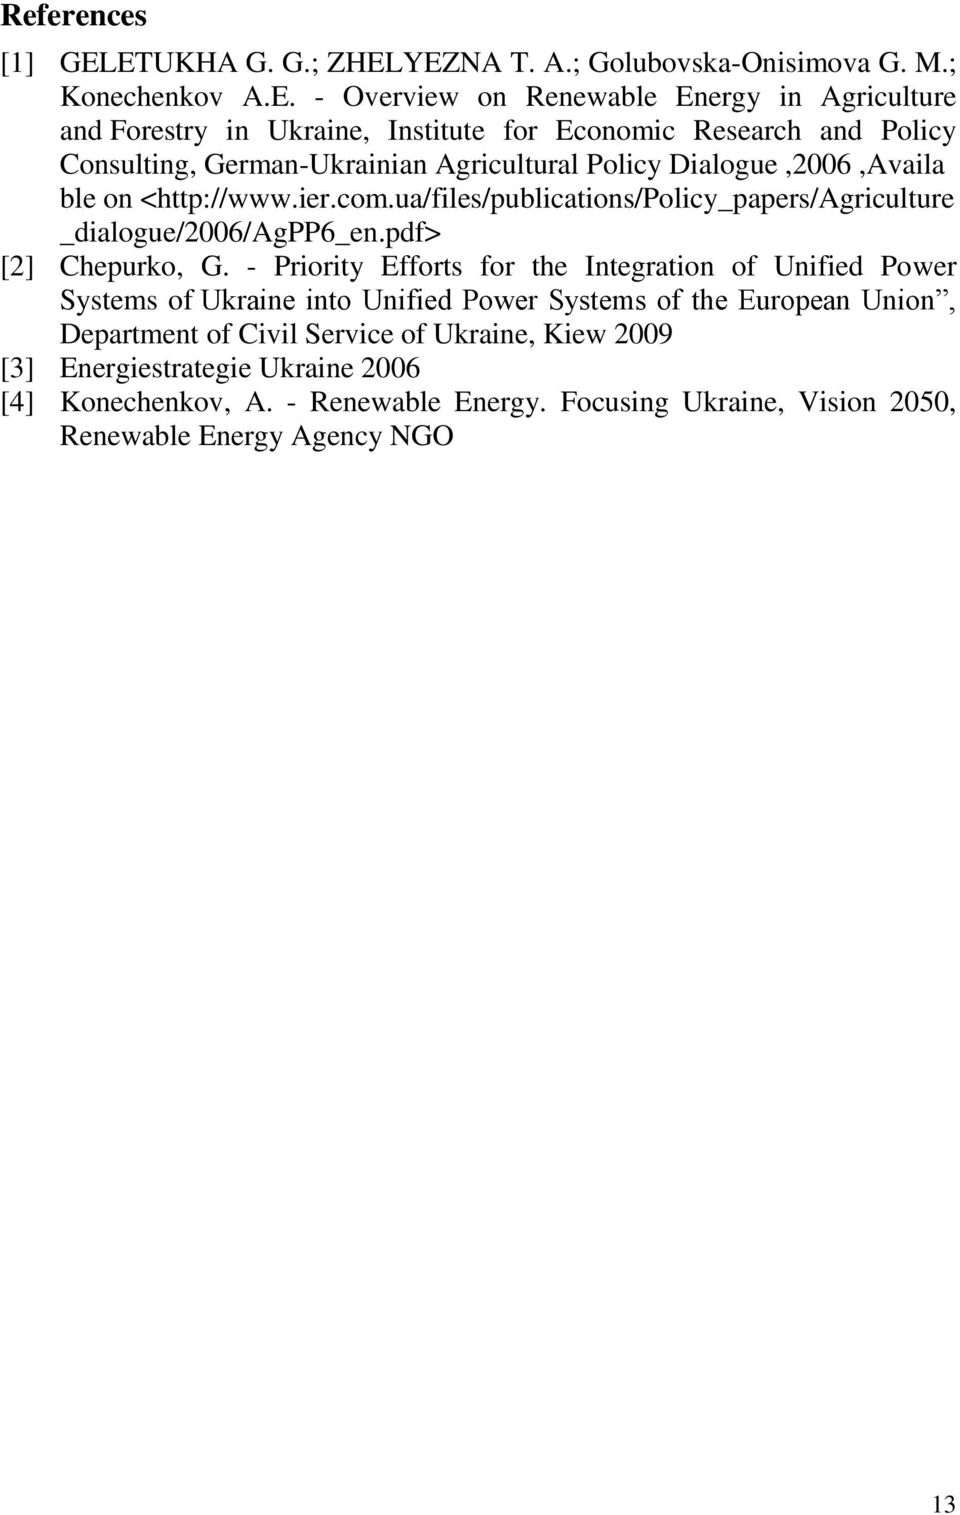 Research and Policy Consulting, German-Ukrainian Agricultural Policy Dialogue,2006,Availa ble on <http://www.ier.com.